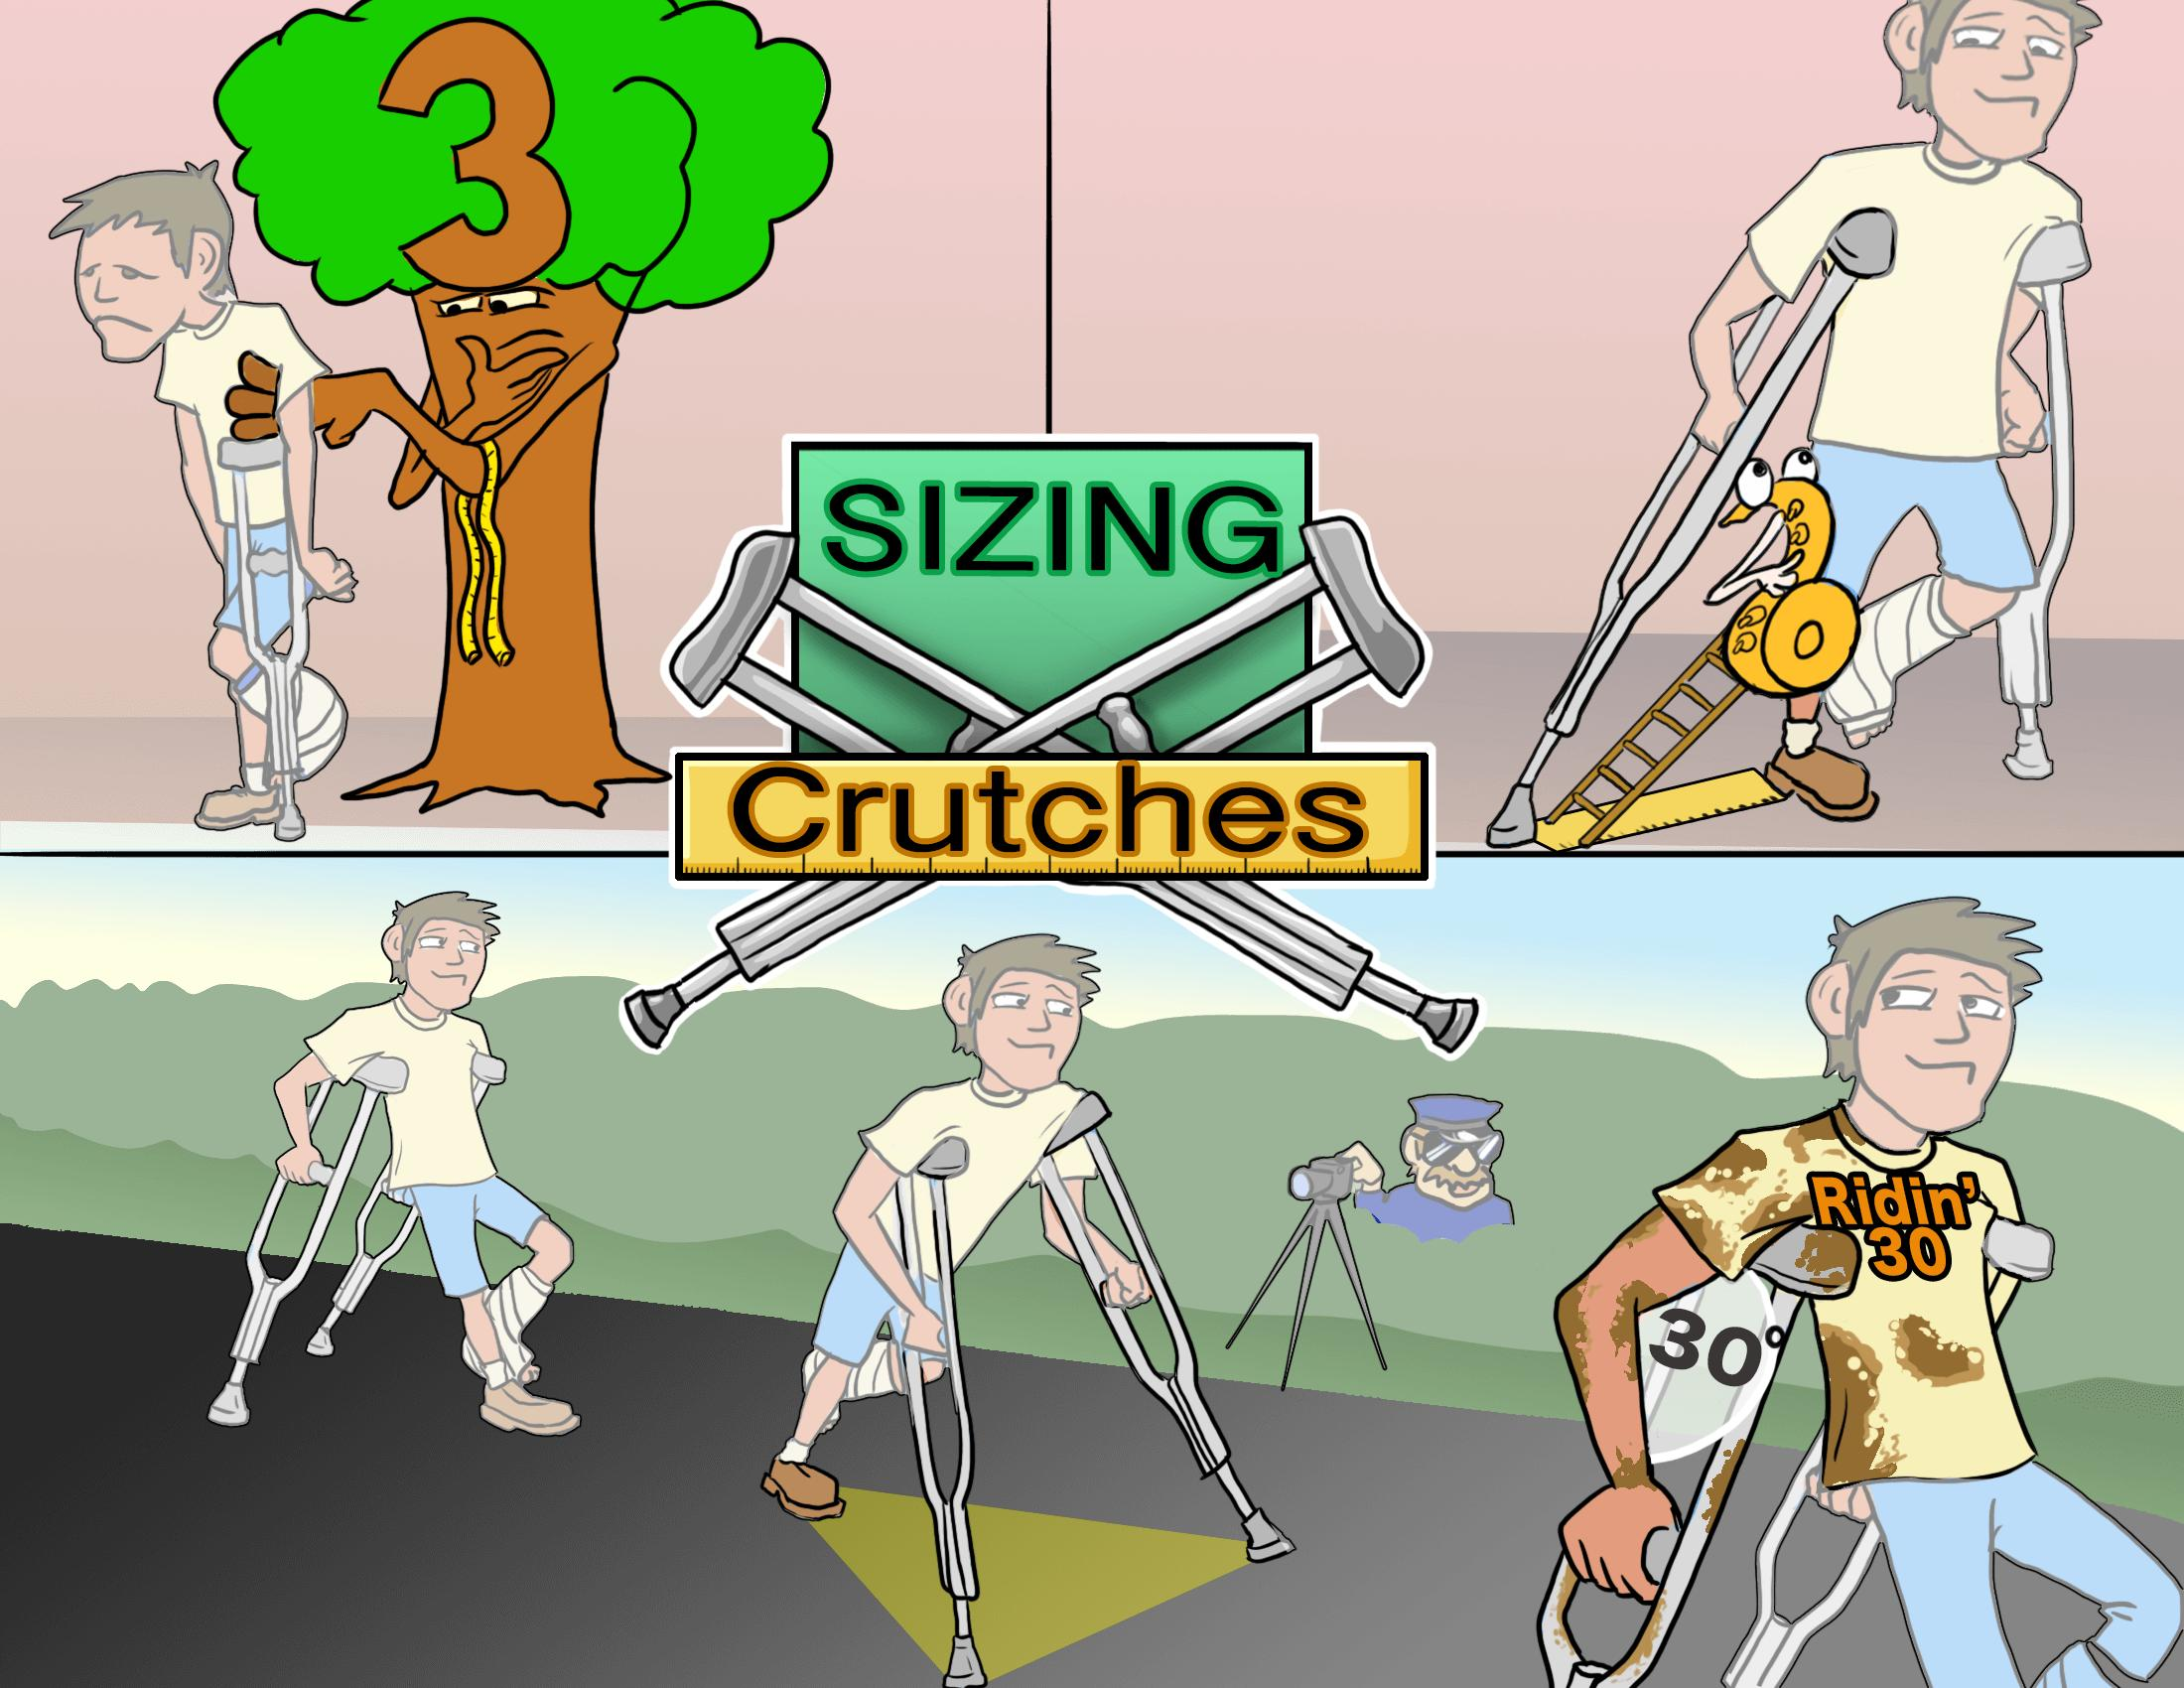 Sizing Crutches